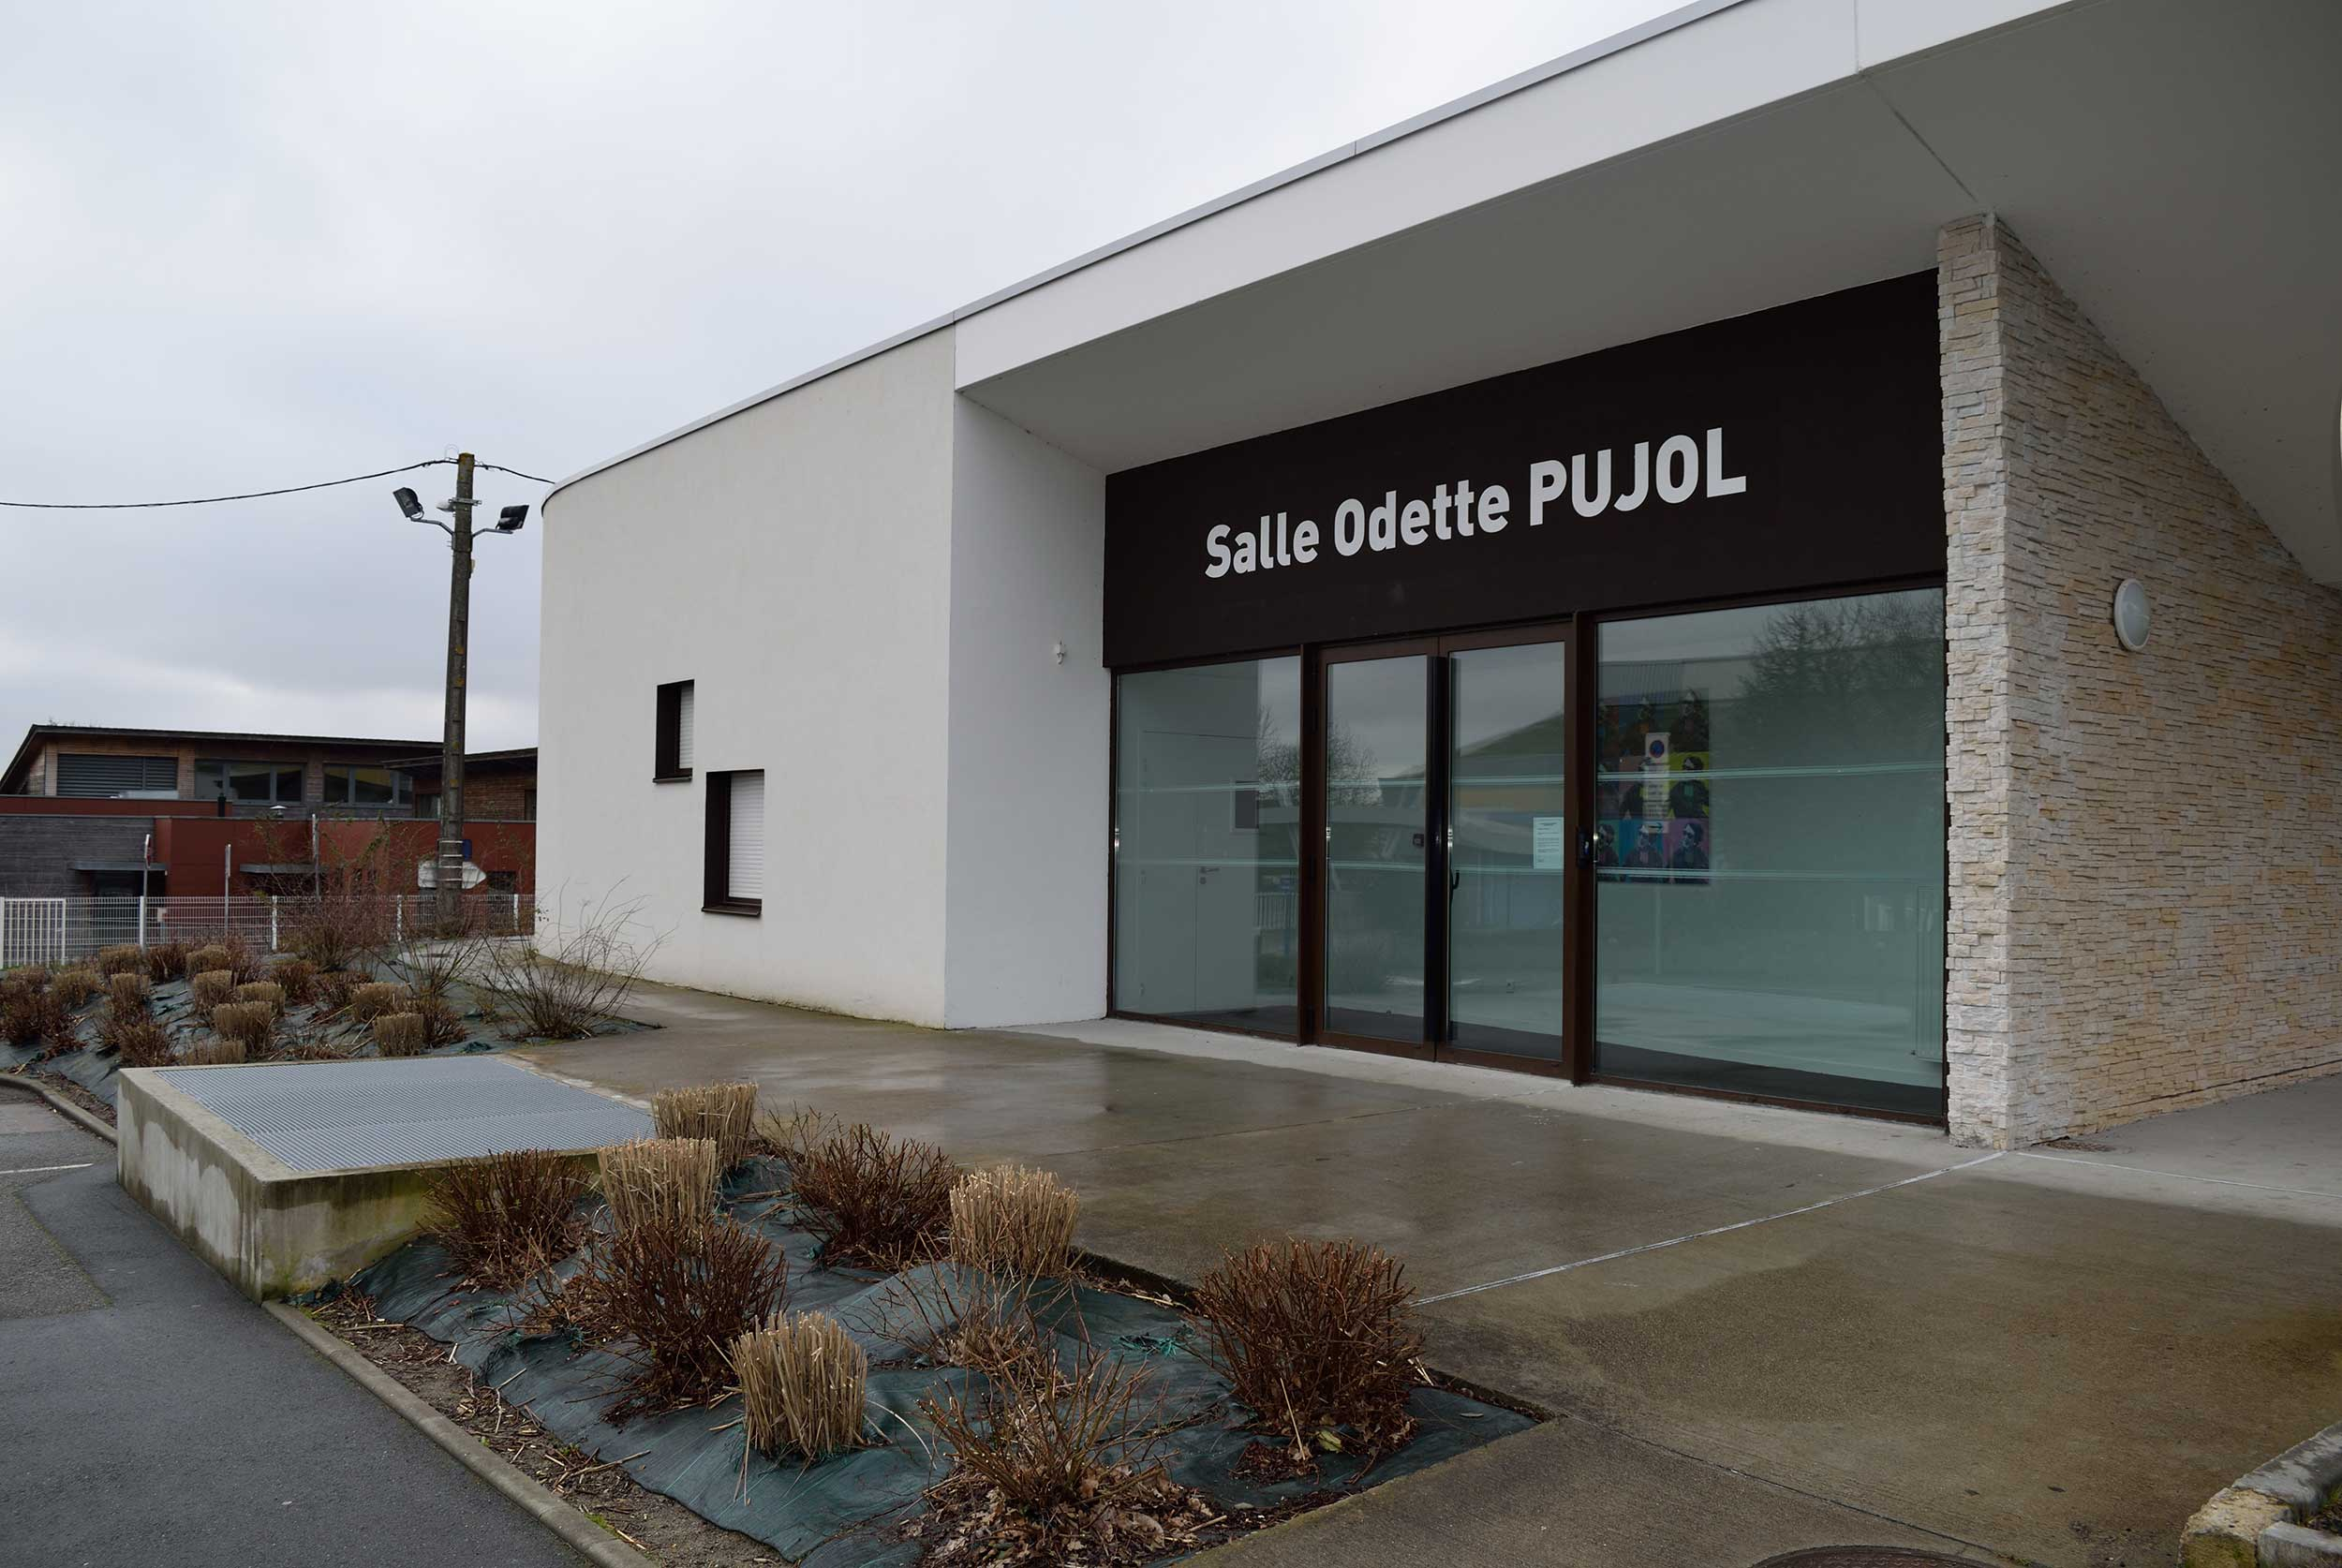 https://www.thouare.fr/wp-content/uploads/2017/03/Salle-municipale-Odette-Pujol.jpg